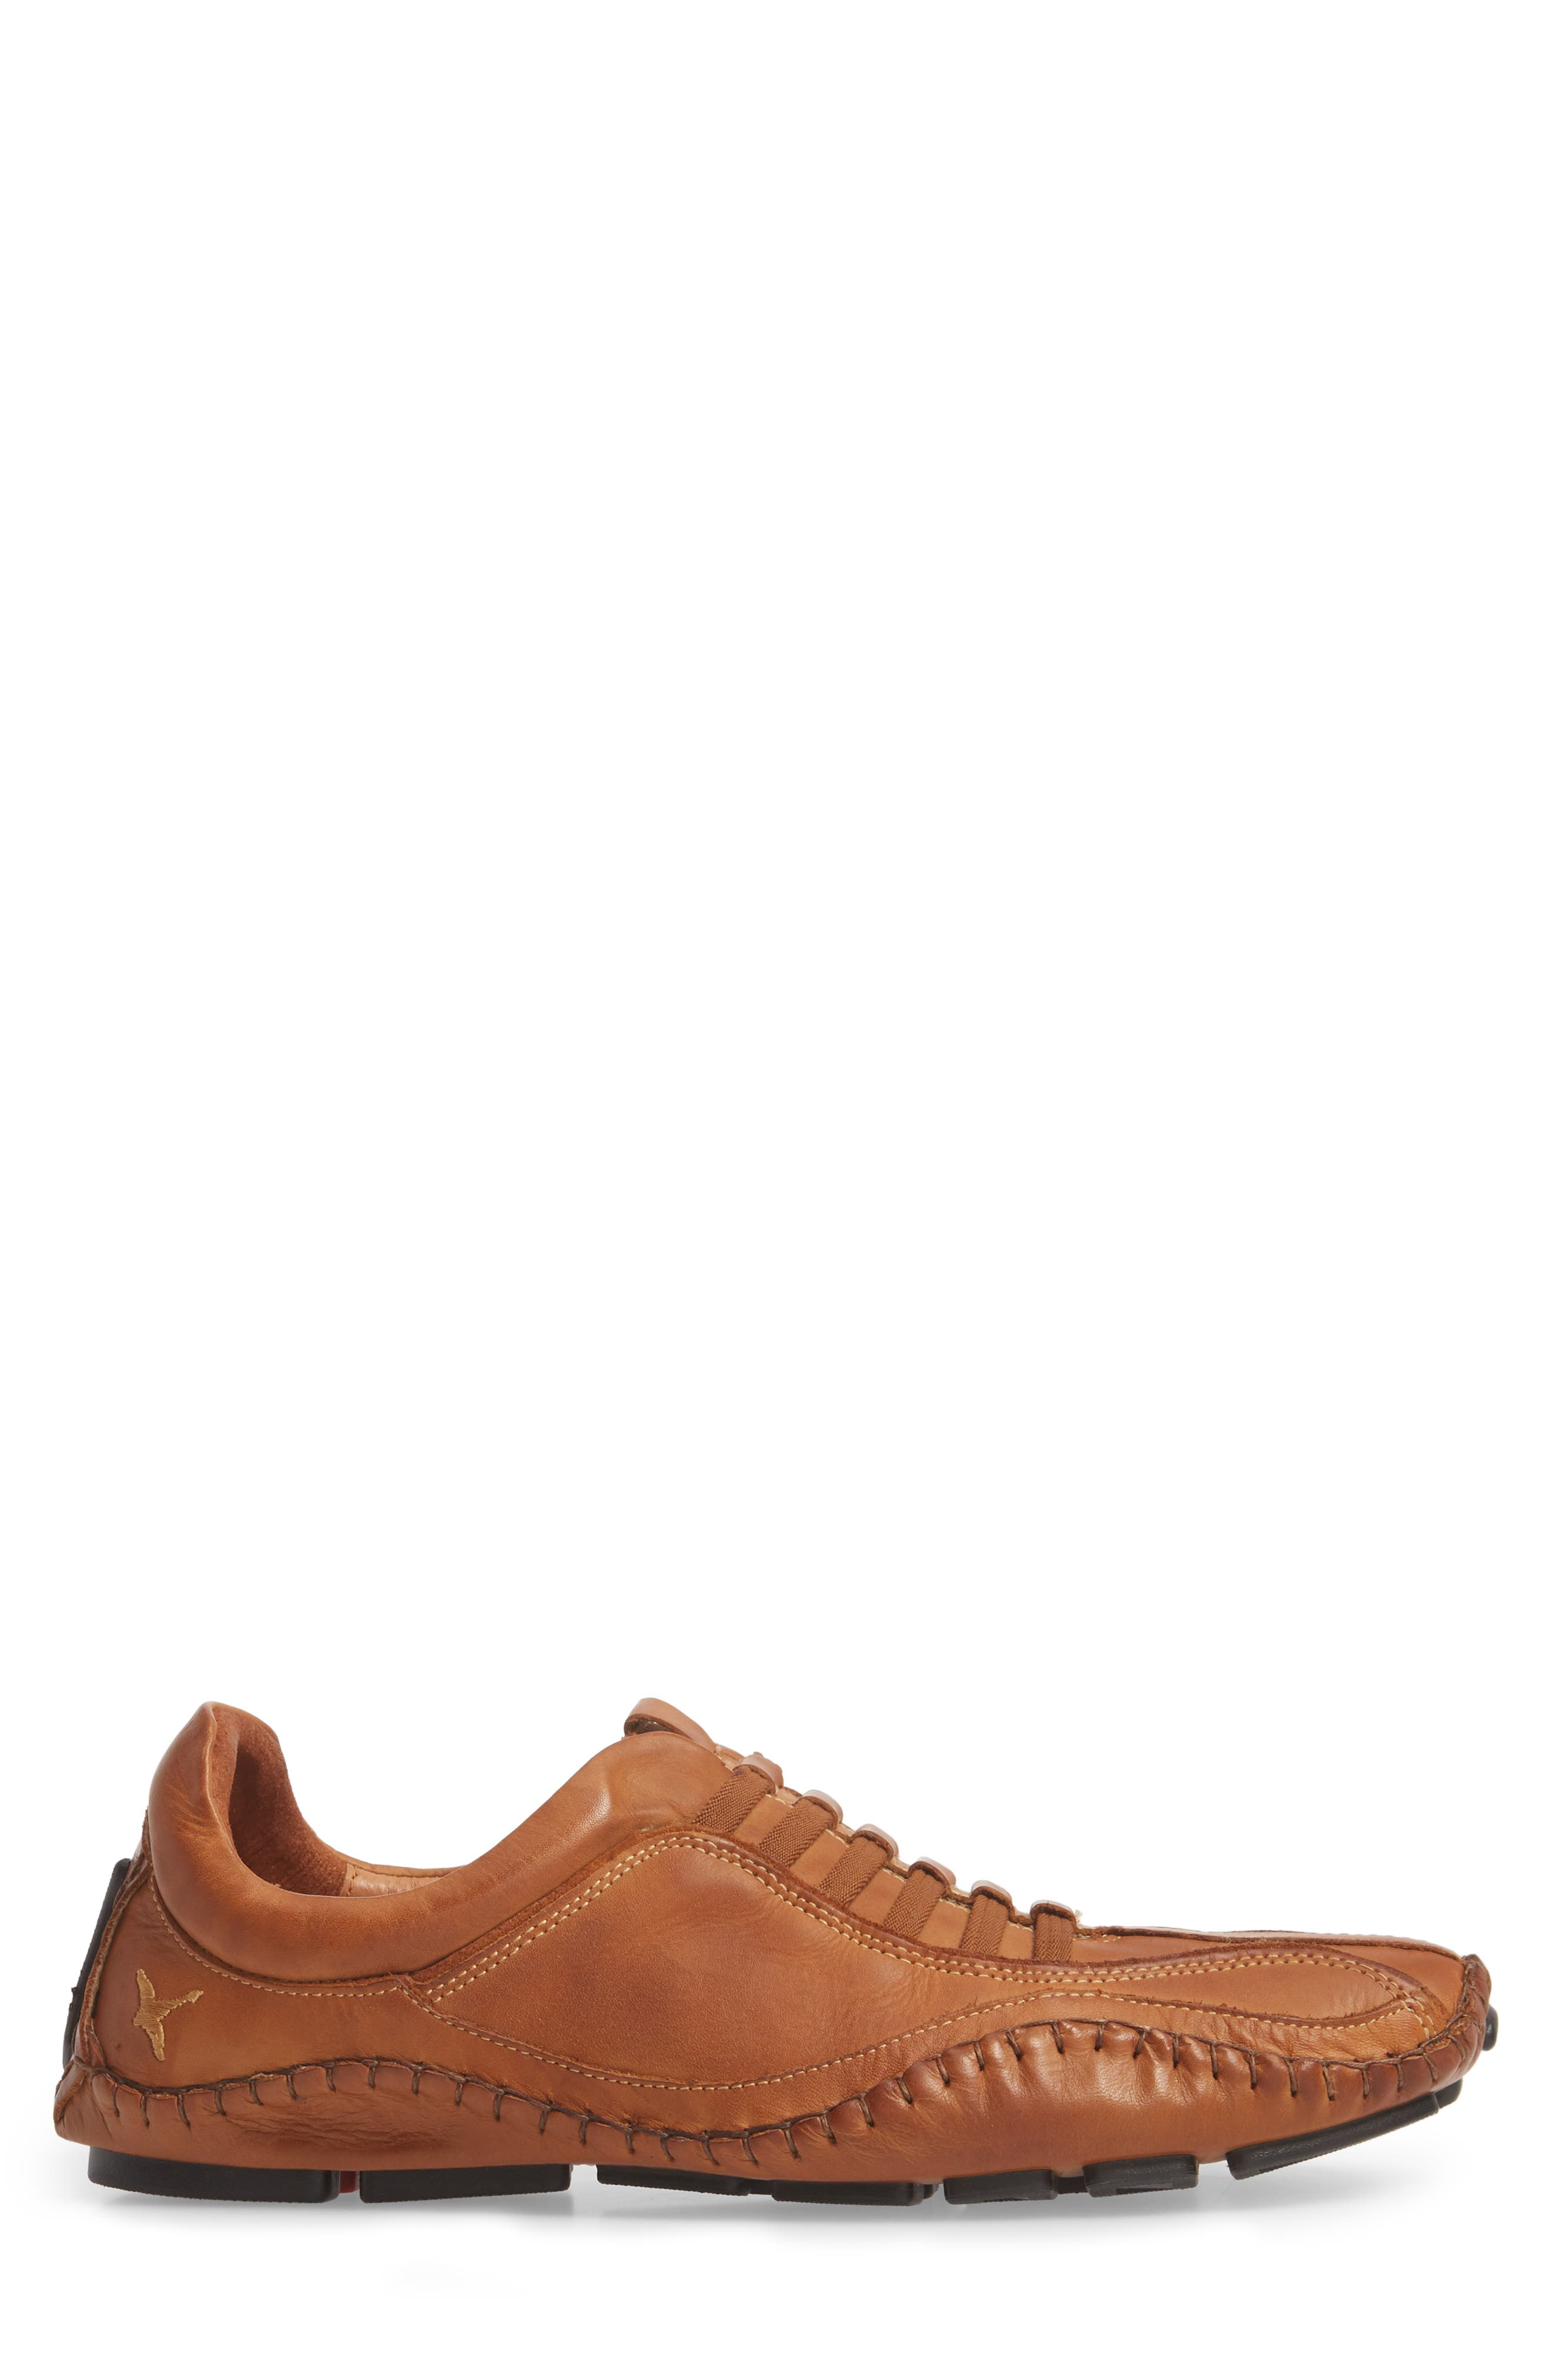 'Fuencarral' Driving Shoe,                             Alternate thumbnail 3, color,                             LIGHT BROWN